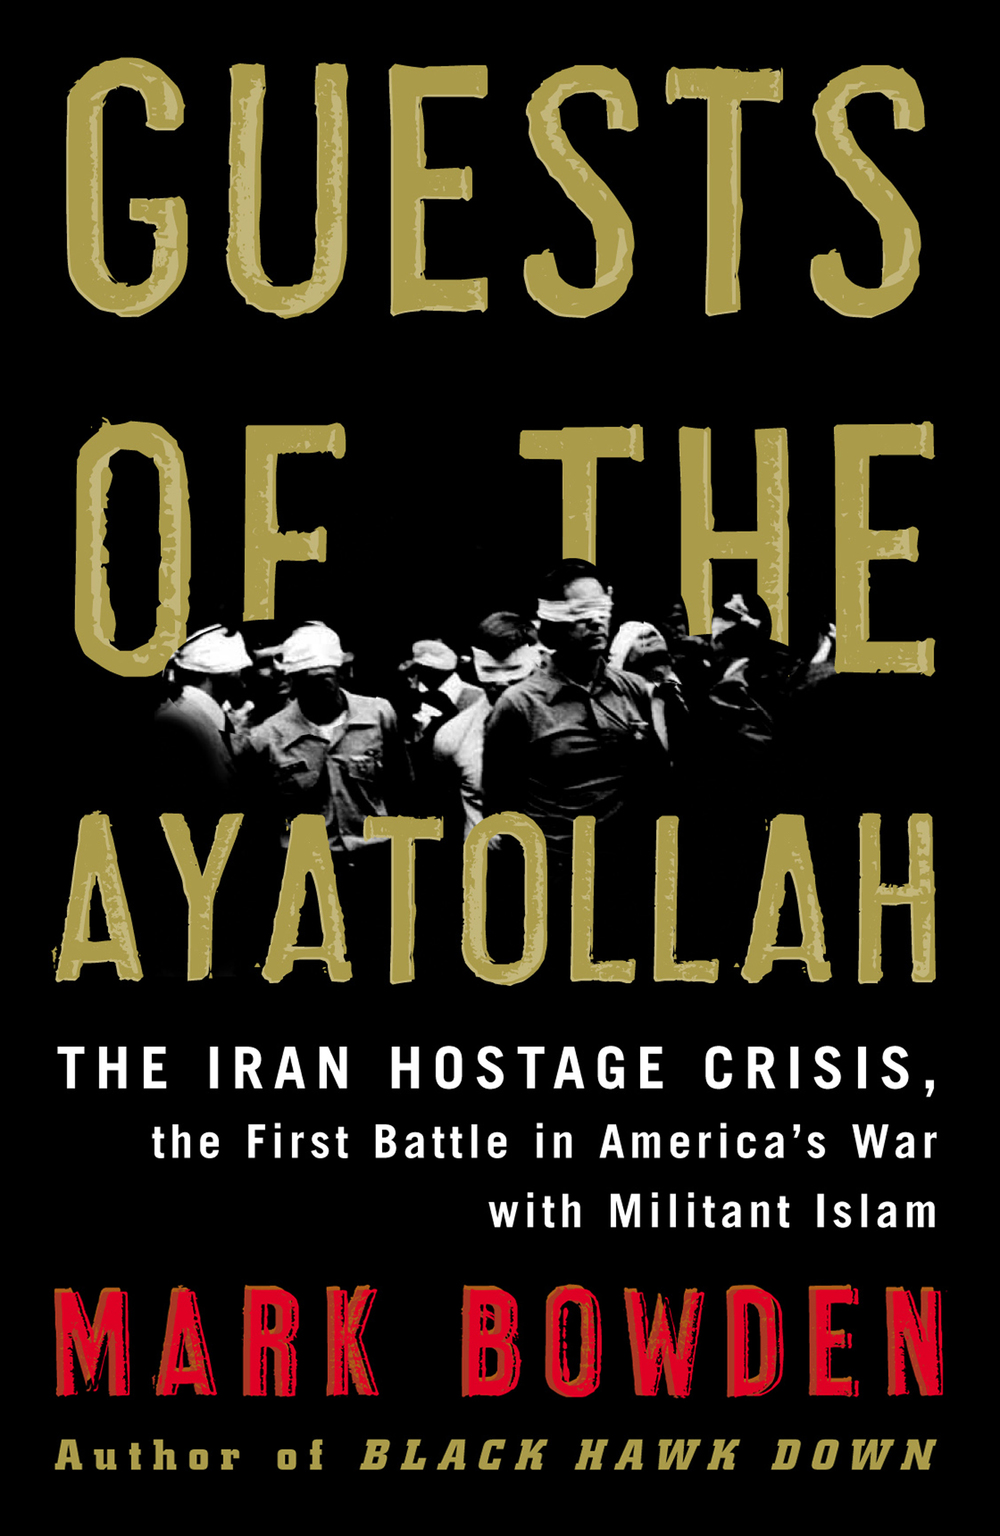 GUESTS-OF-THE-AYATOLLAH-tpb-ss6.jpg